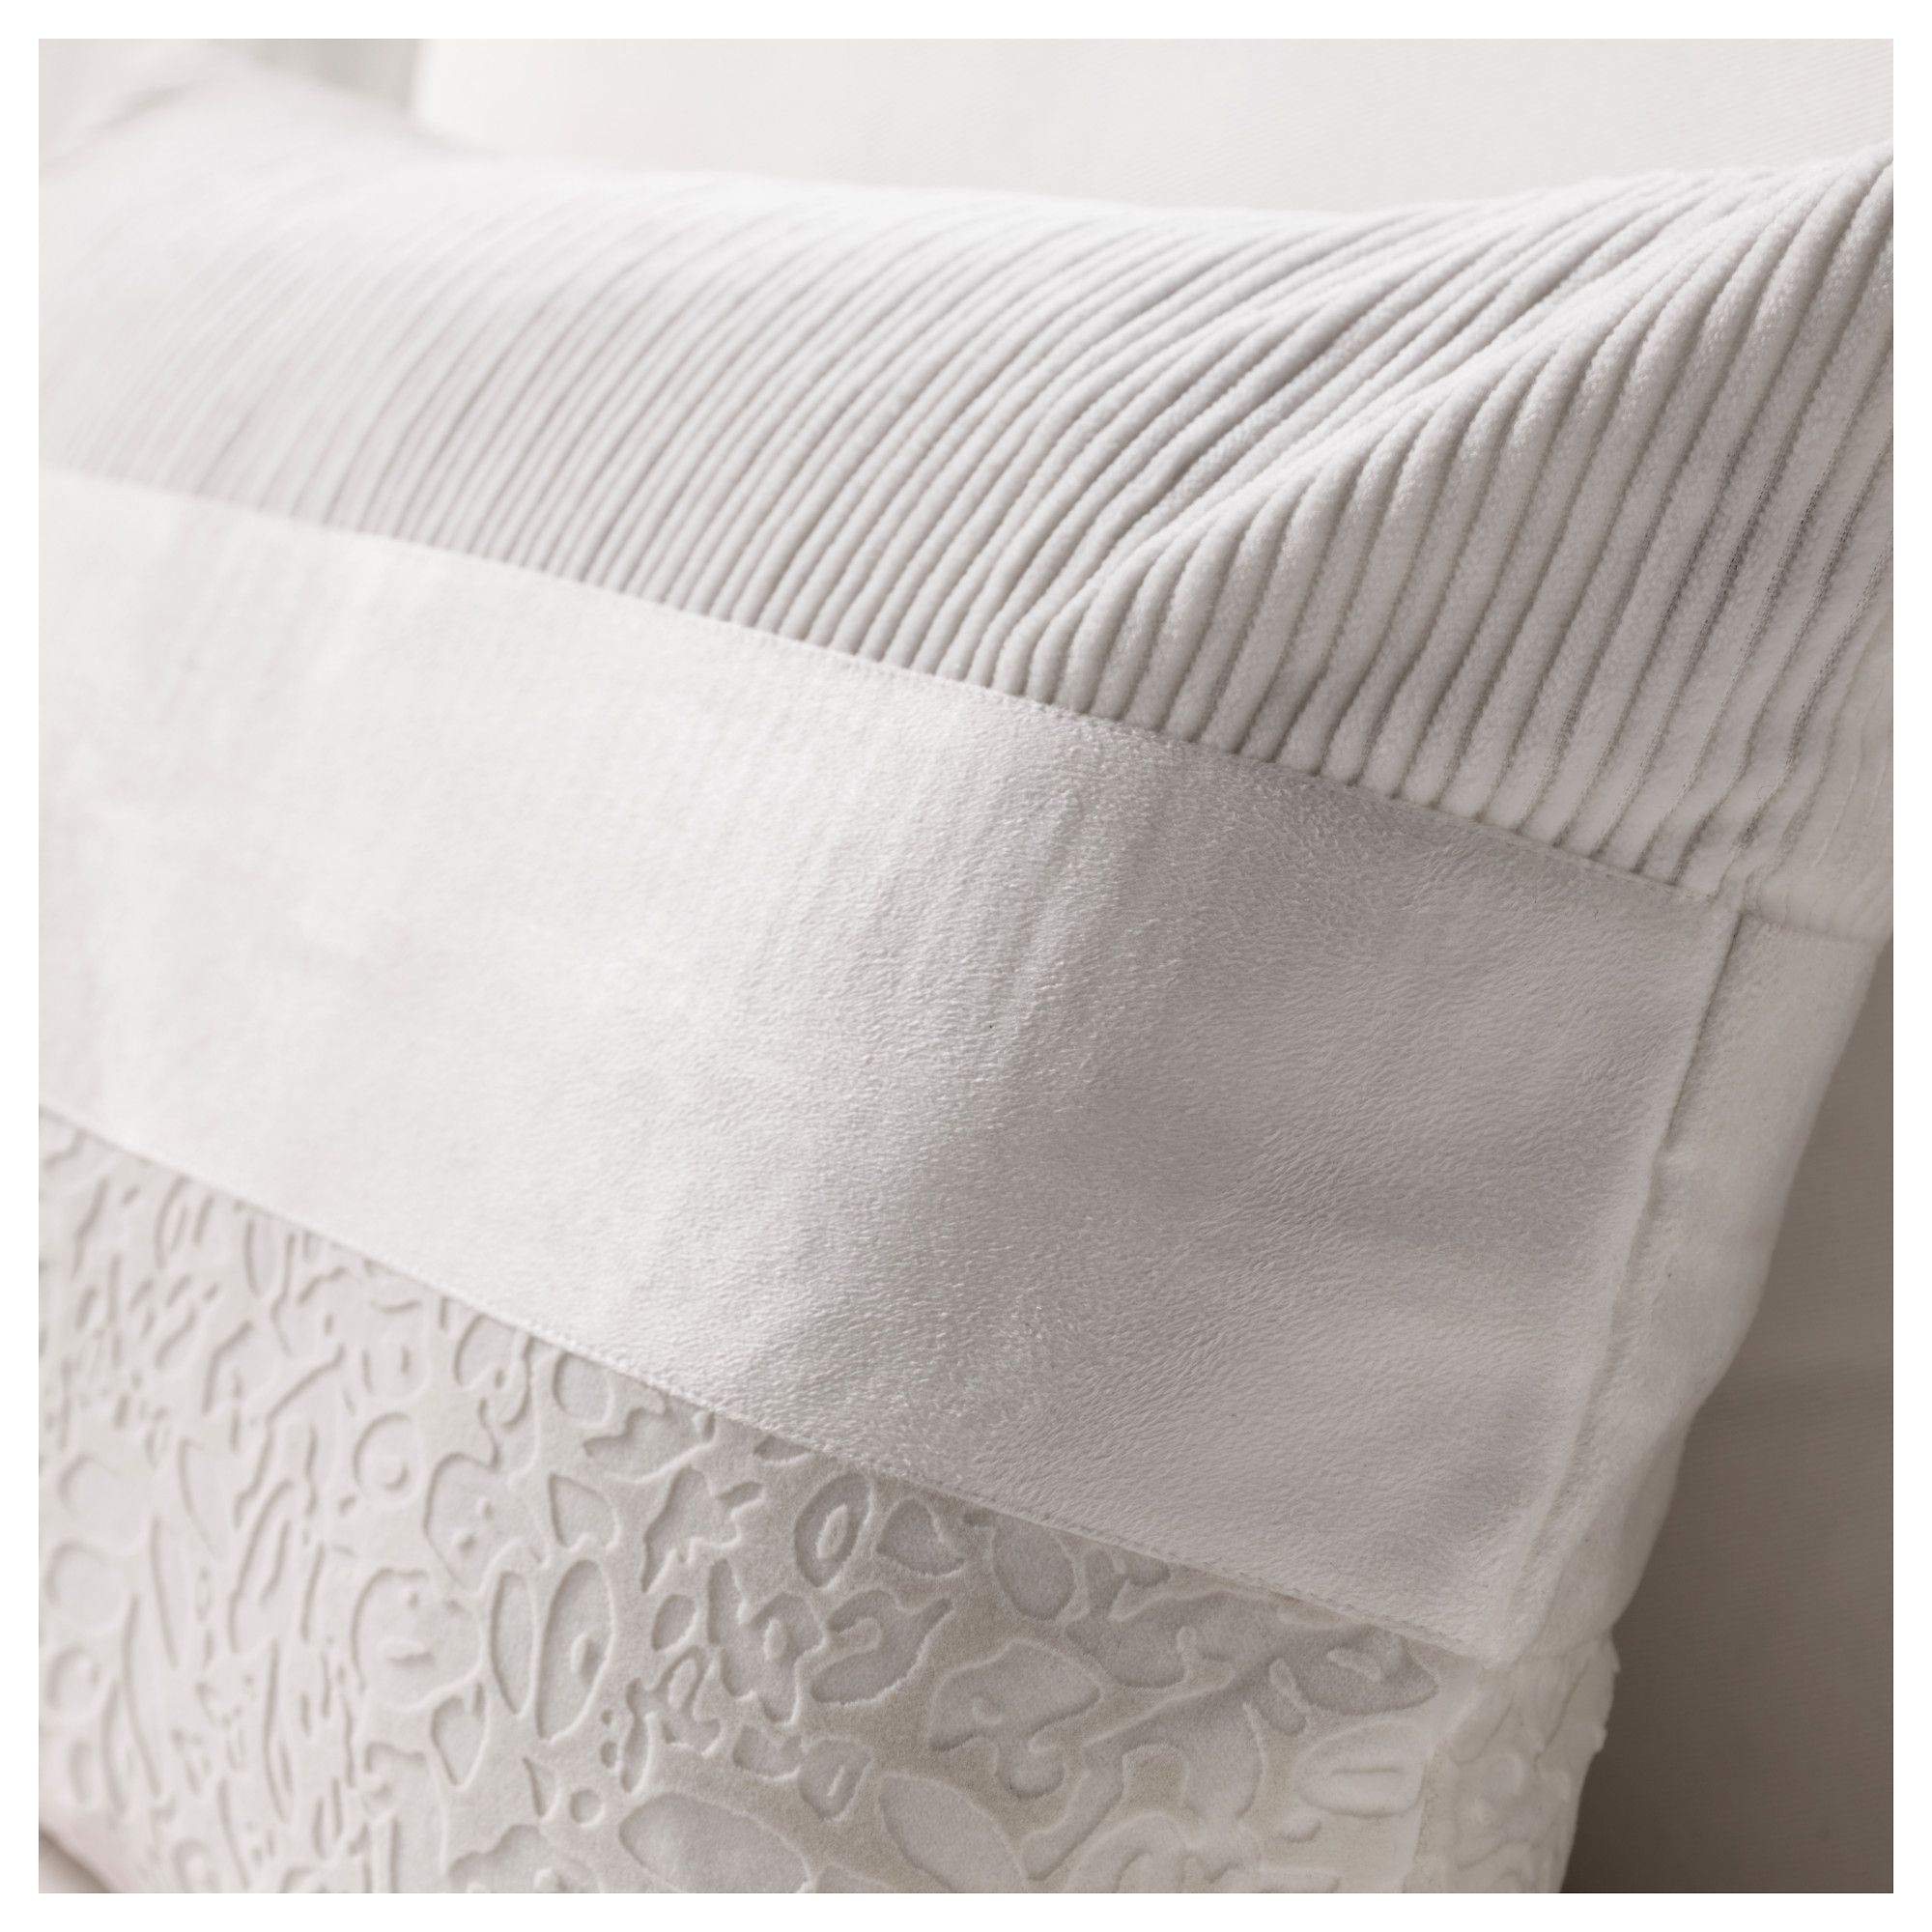 lustwithalaugh and hypoallergenic thread count corner single ties alter of white set queen sets california floral full quilt amp blue king gold luxurious size zipper gray kingking with super chocolate design doona egyptian cotton twin by navy purple duvet ac rty duvets cover chenille covers